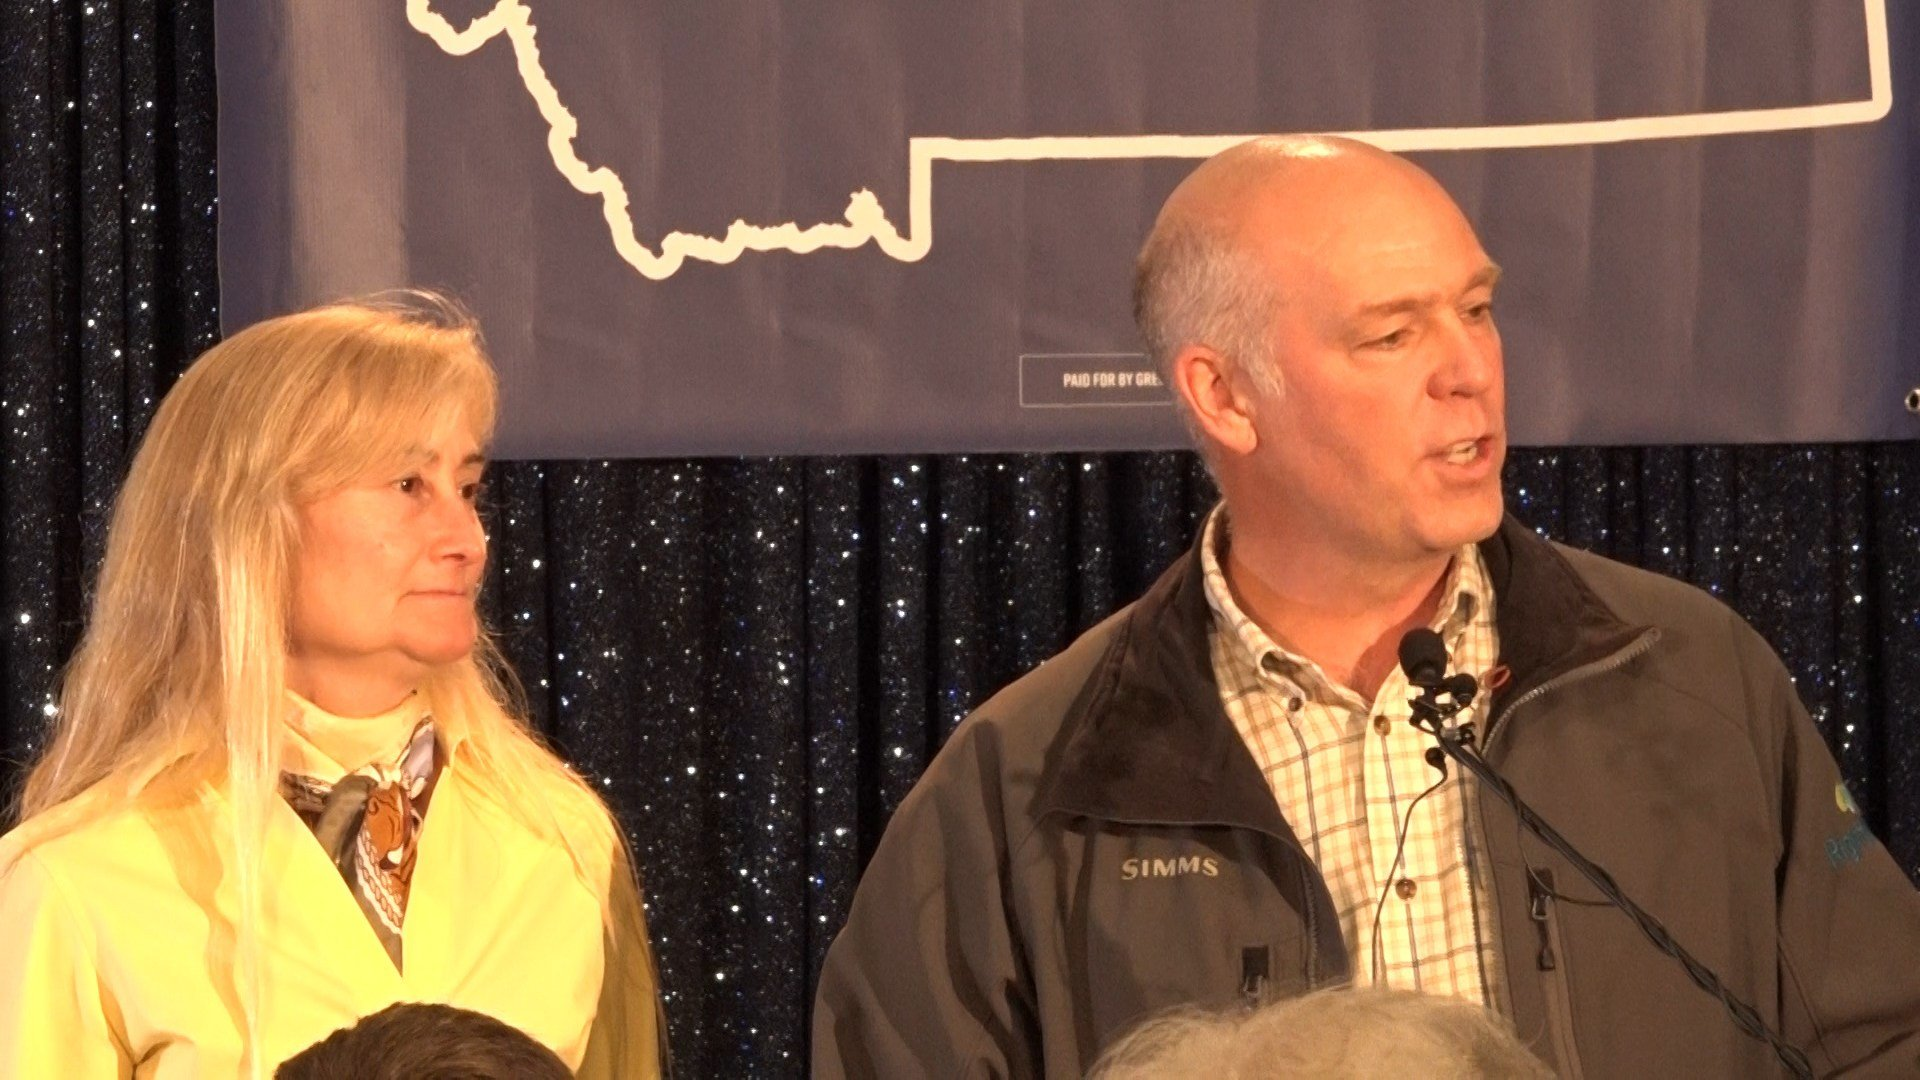 Republican U.S. House candidate Greg Gianforte and his wife, Susan, on election night